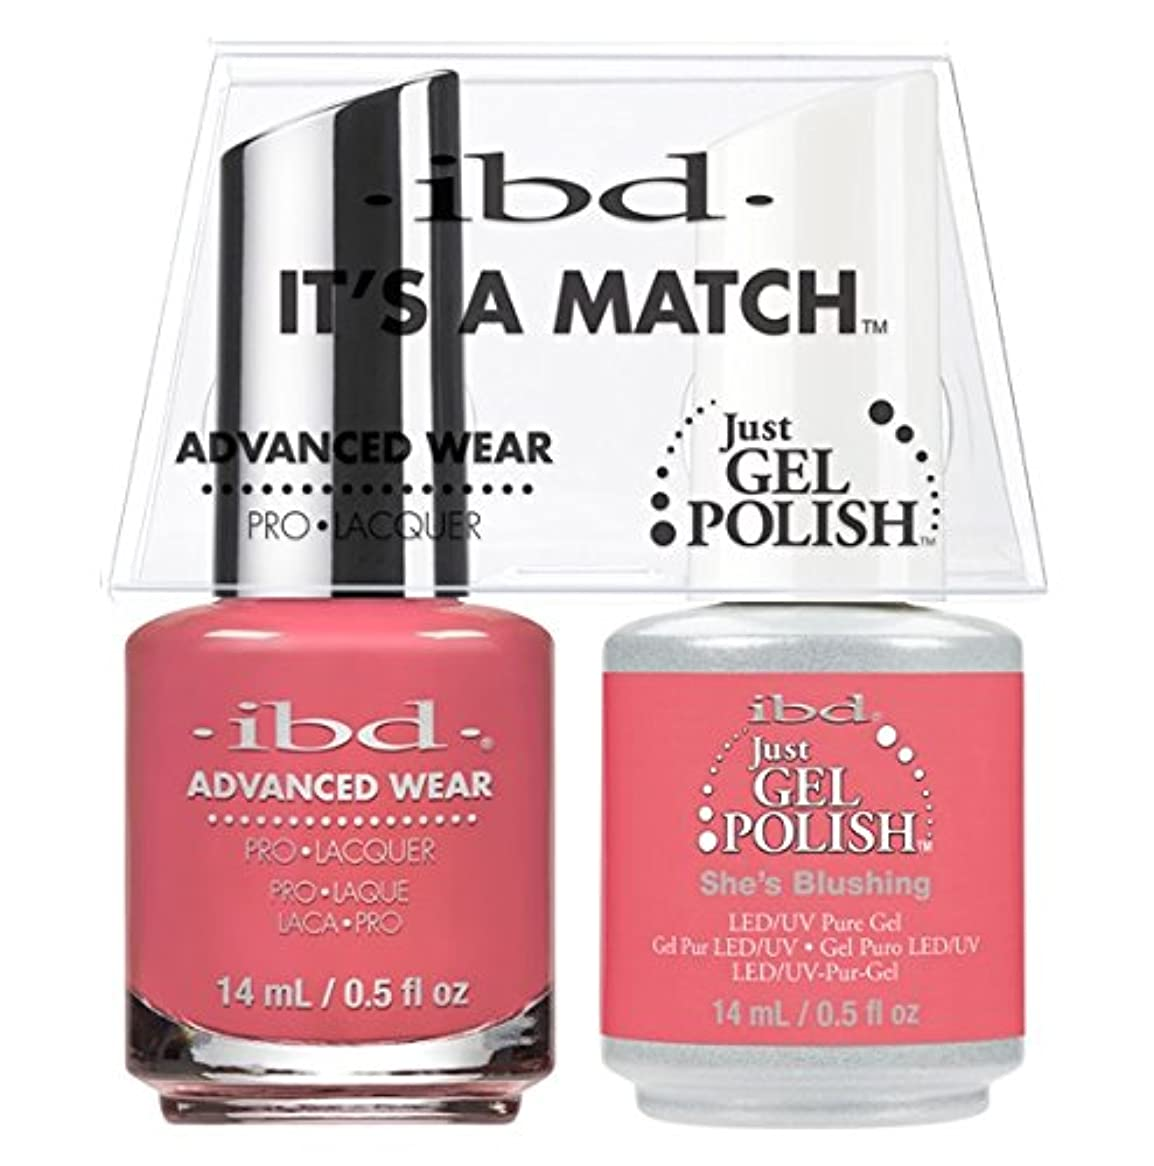 ibd - It's A Match -Duo Pack- She's Blushing - 14 mL / 0.5 oz Each